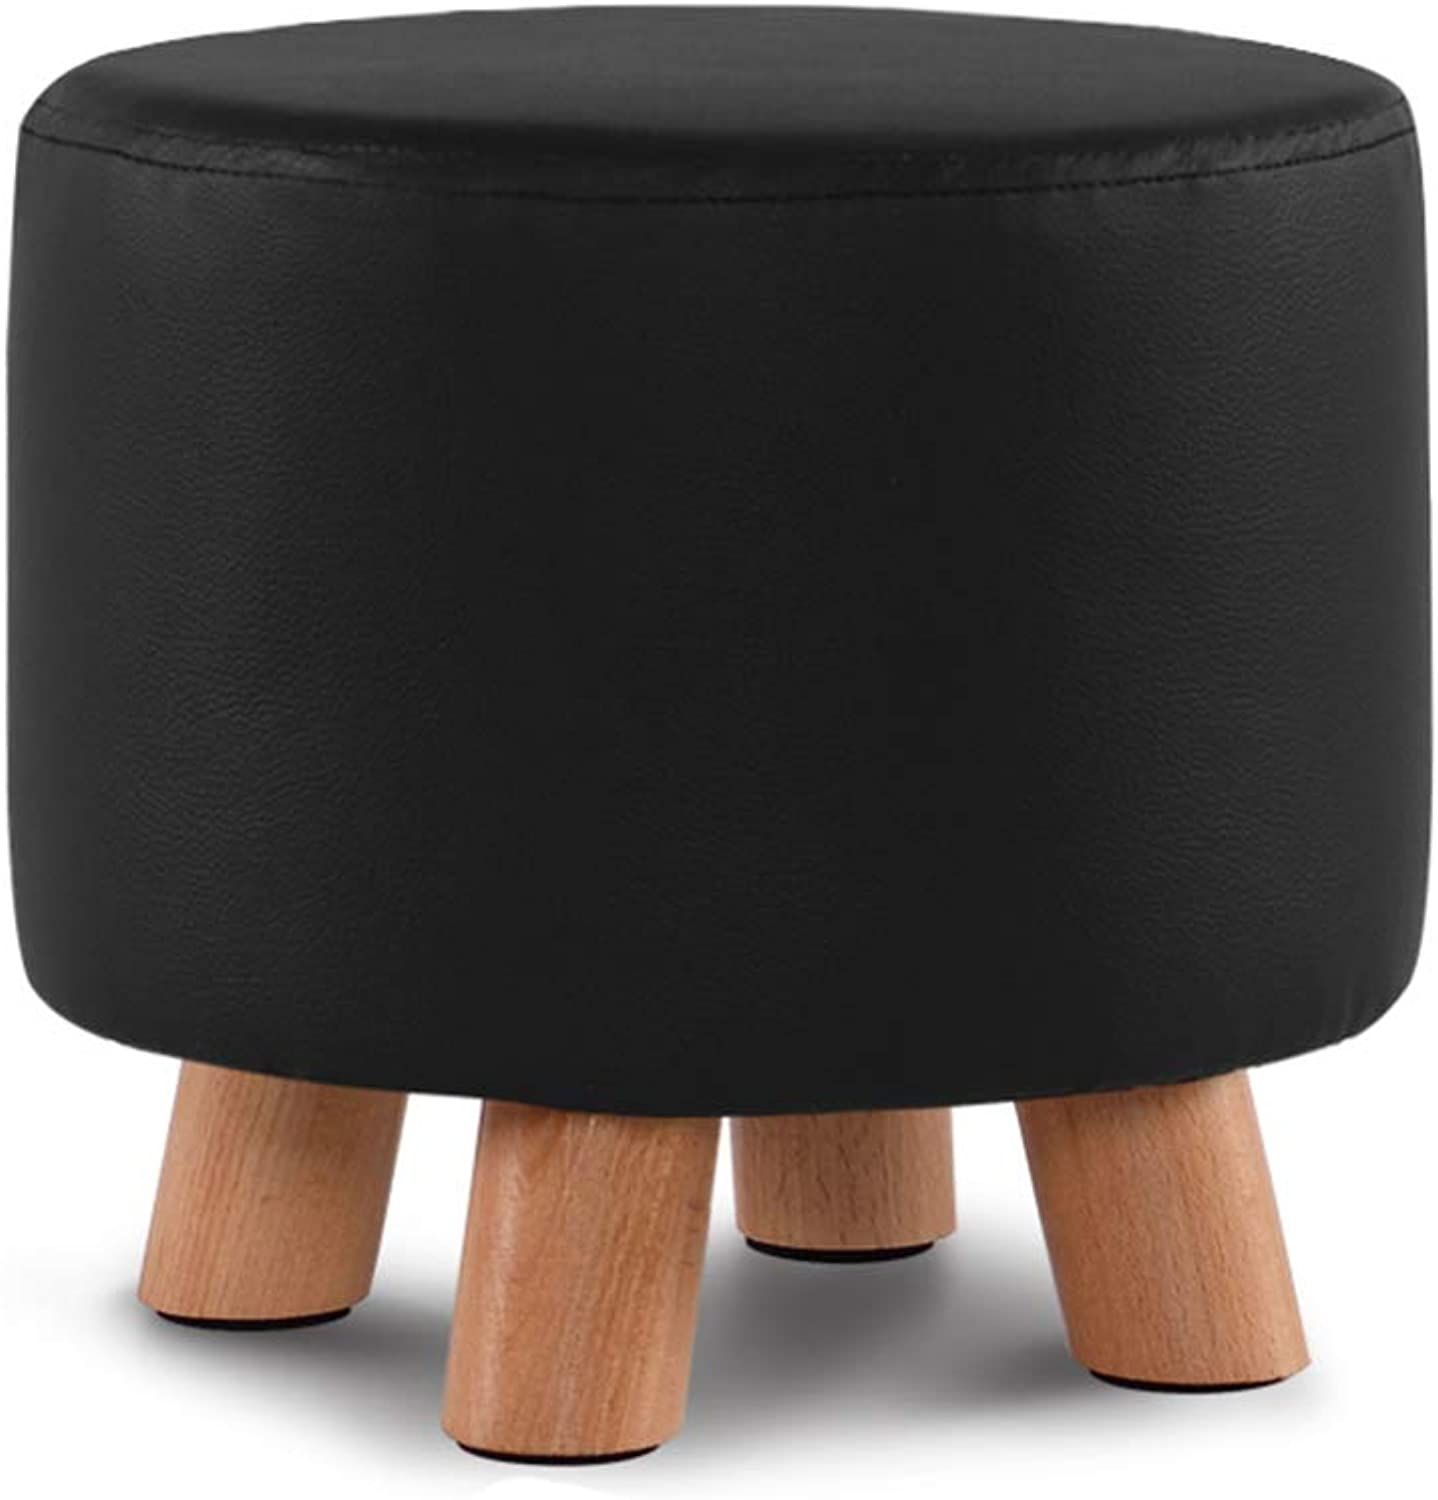 XSJJ Stool, Home Solid Wood Creative Round Fabric Sofa Coffee Table Home Hall Change shoes Low Stool 8 colors Optional Wooden Bench (color   Elm Black)